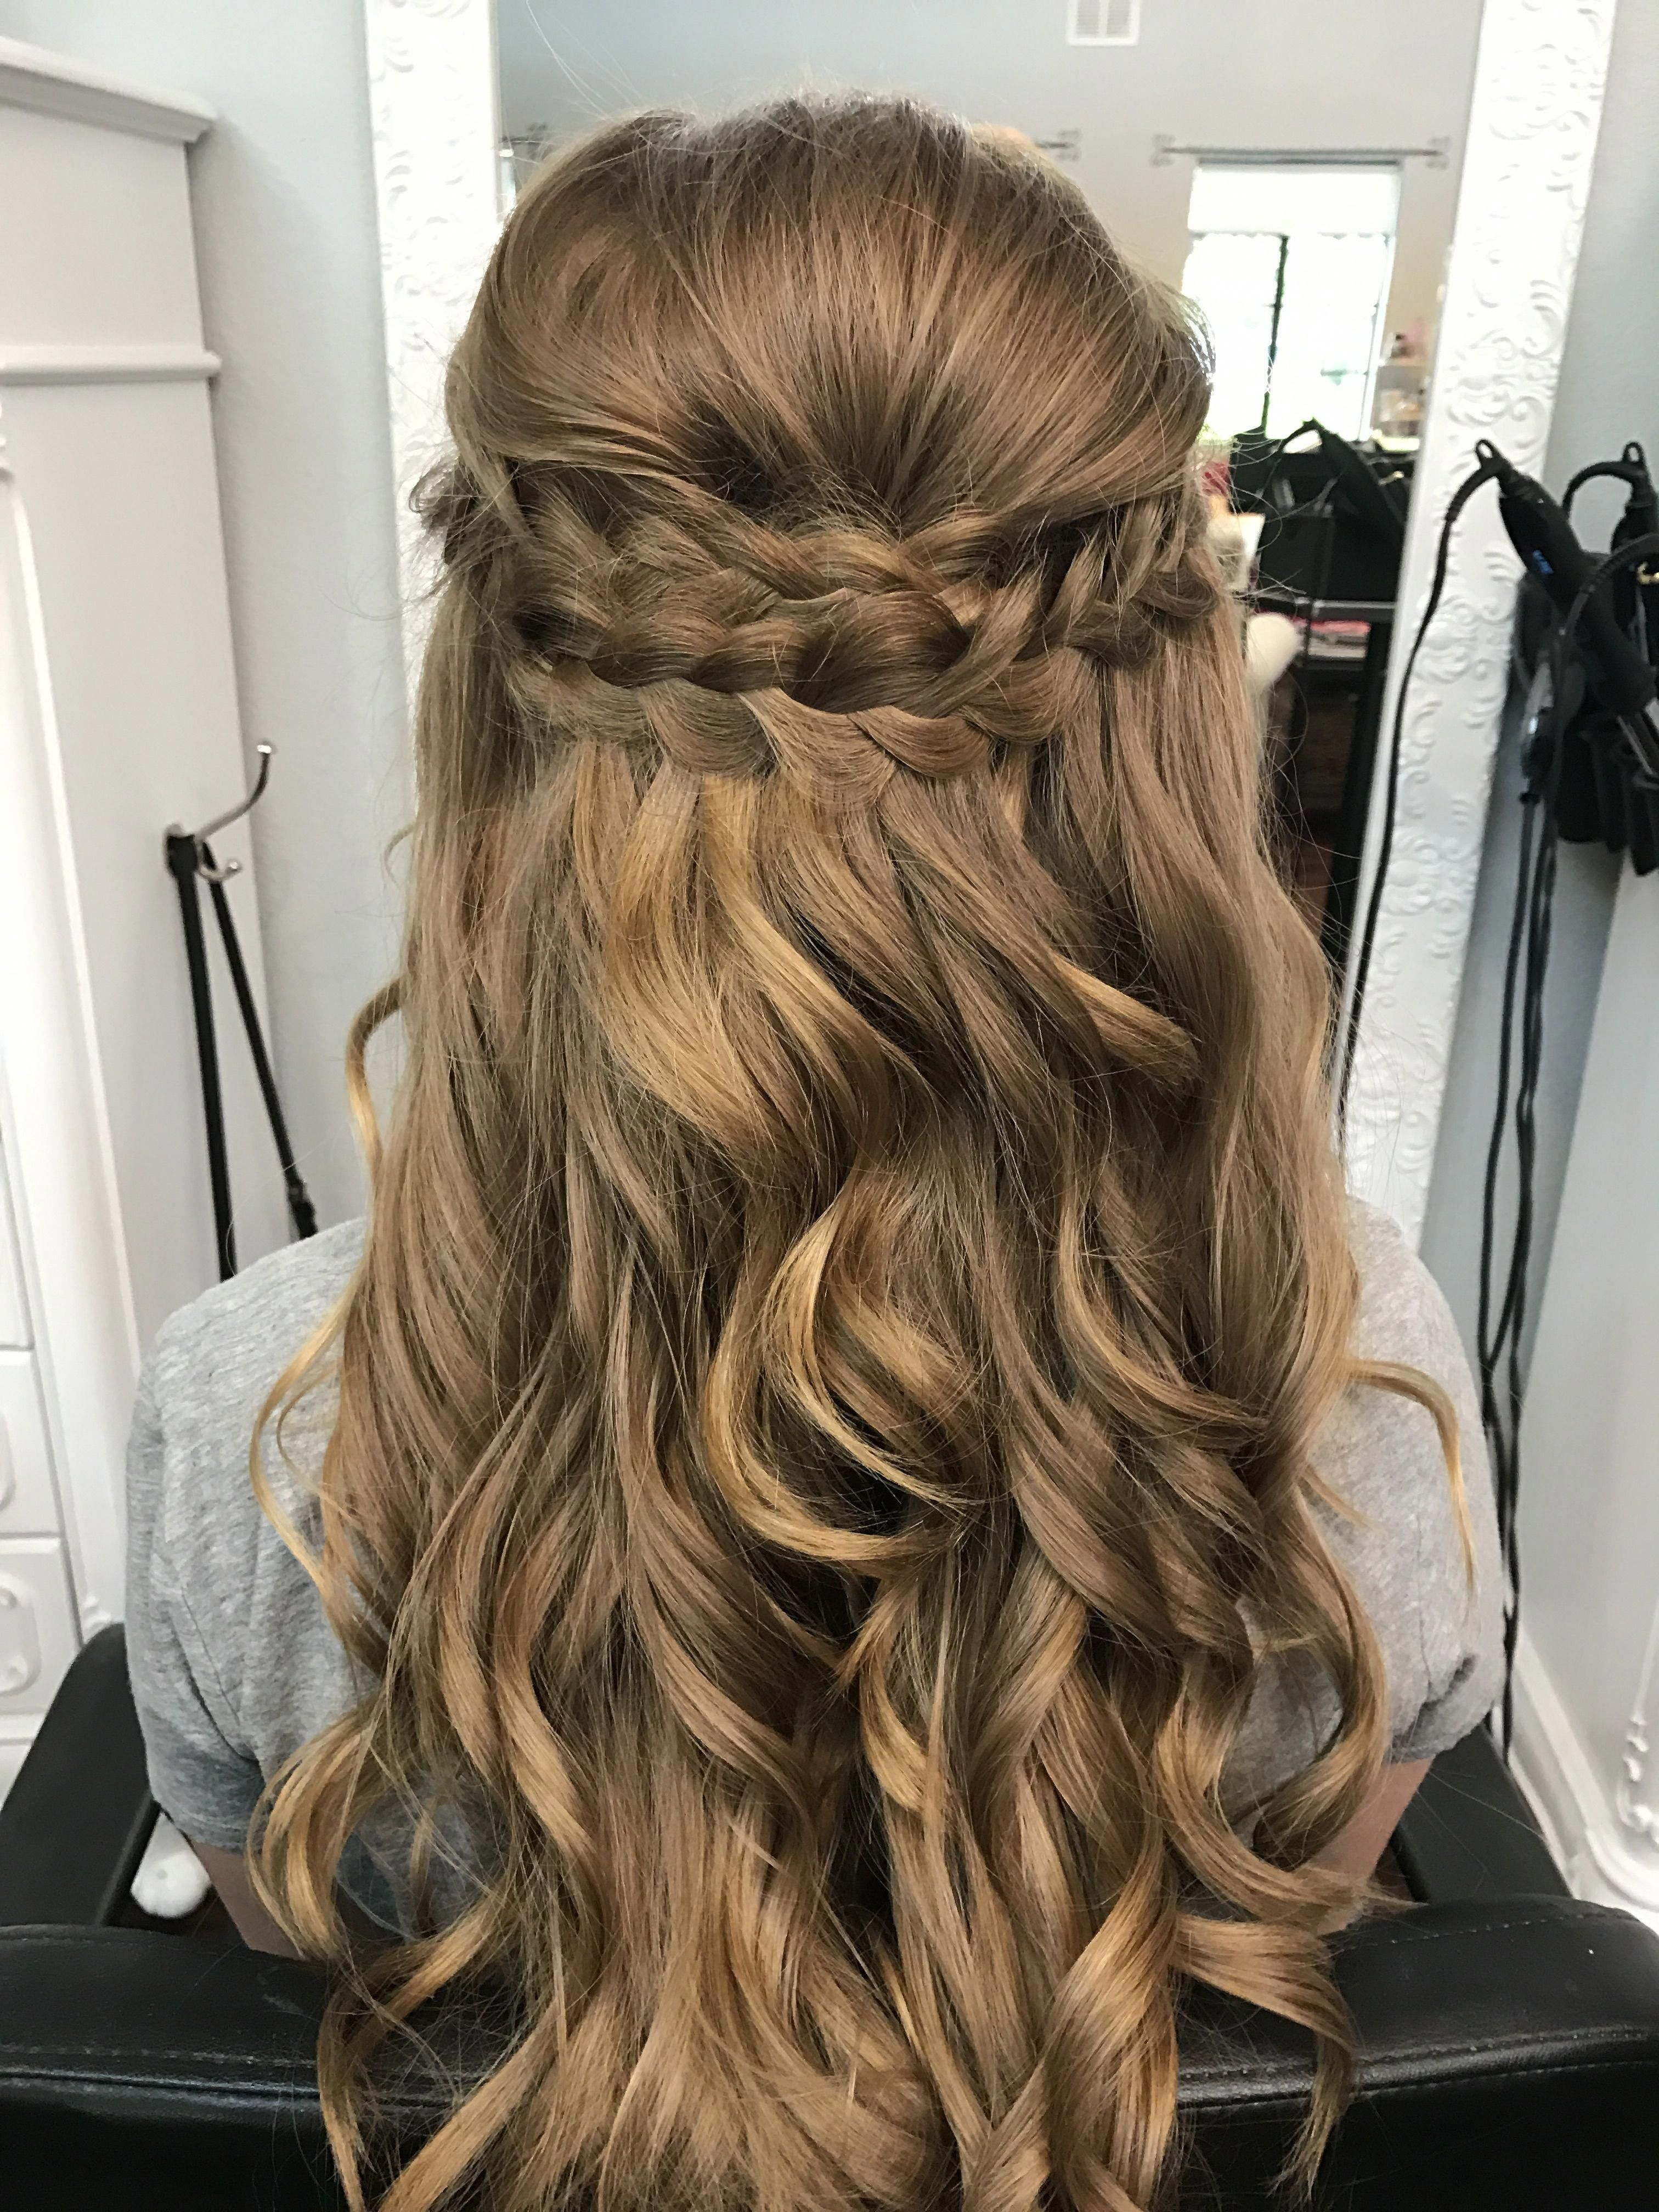 Braided Half Up Half Down Prom Hair Promhairstyleupdos Prom